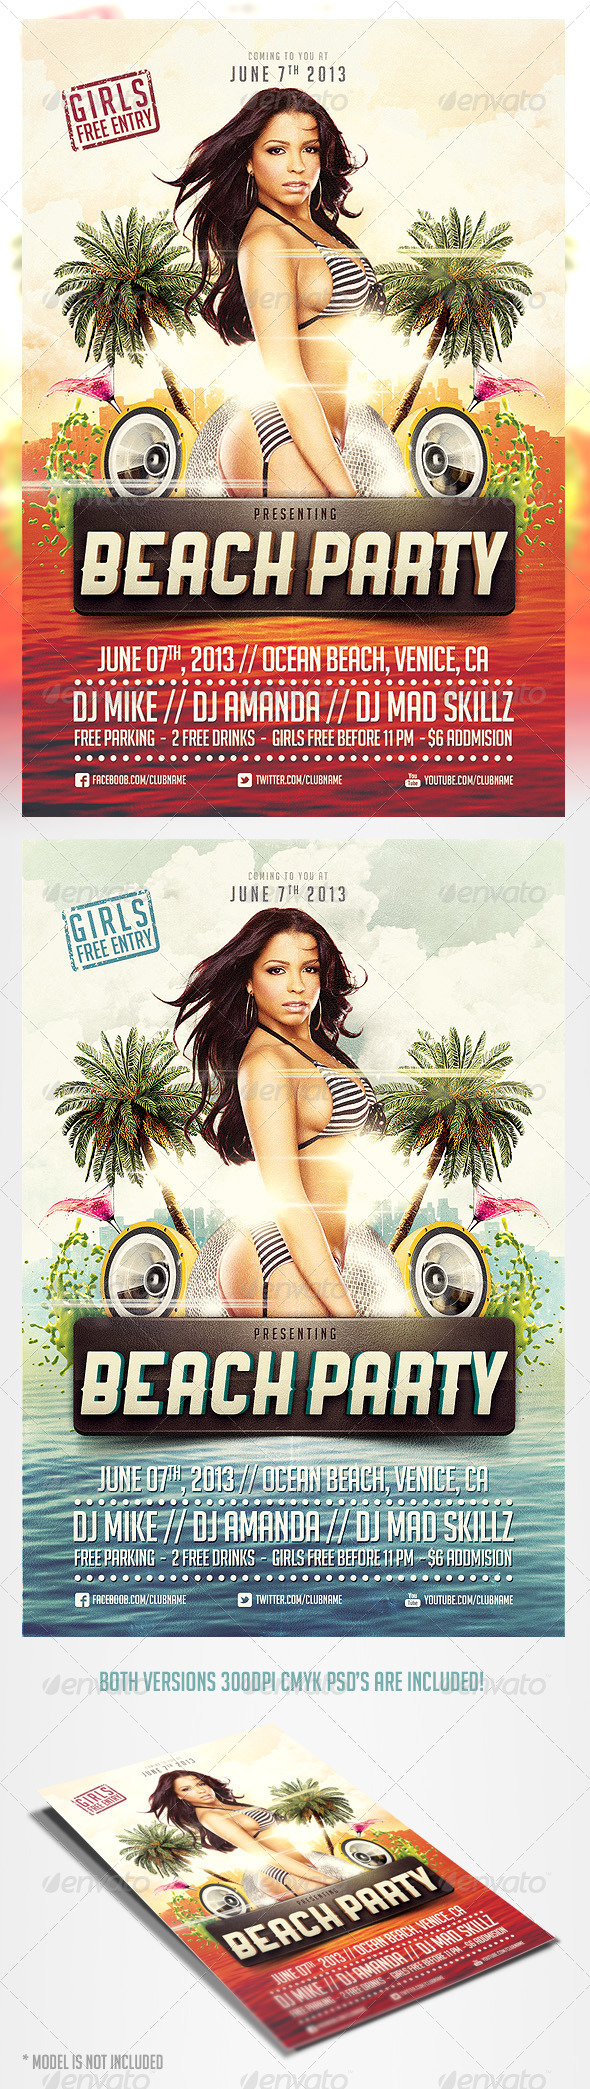 GraphicRiver Beach Party Flyer Template 4371169